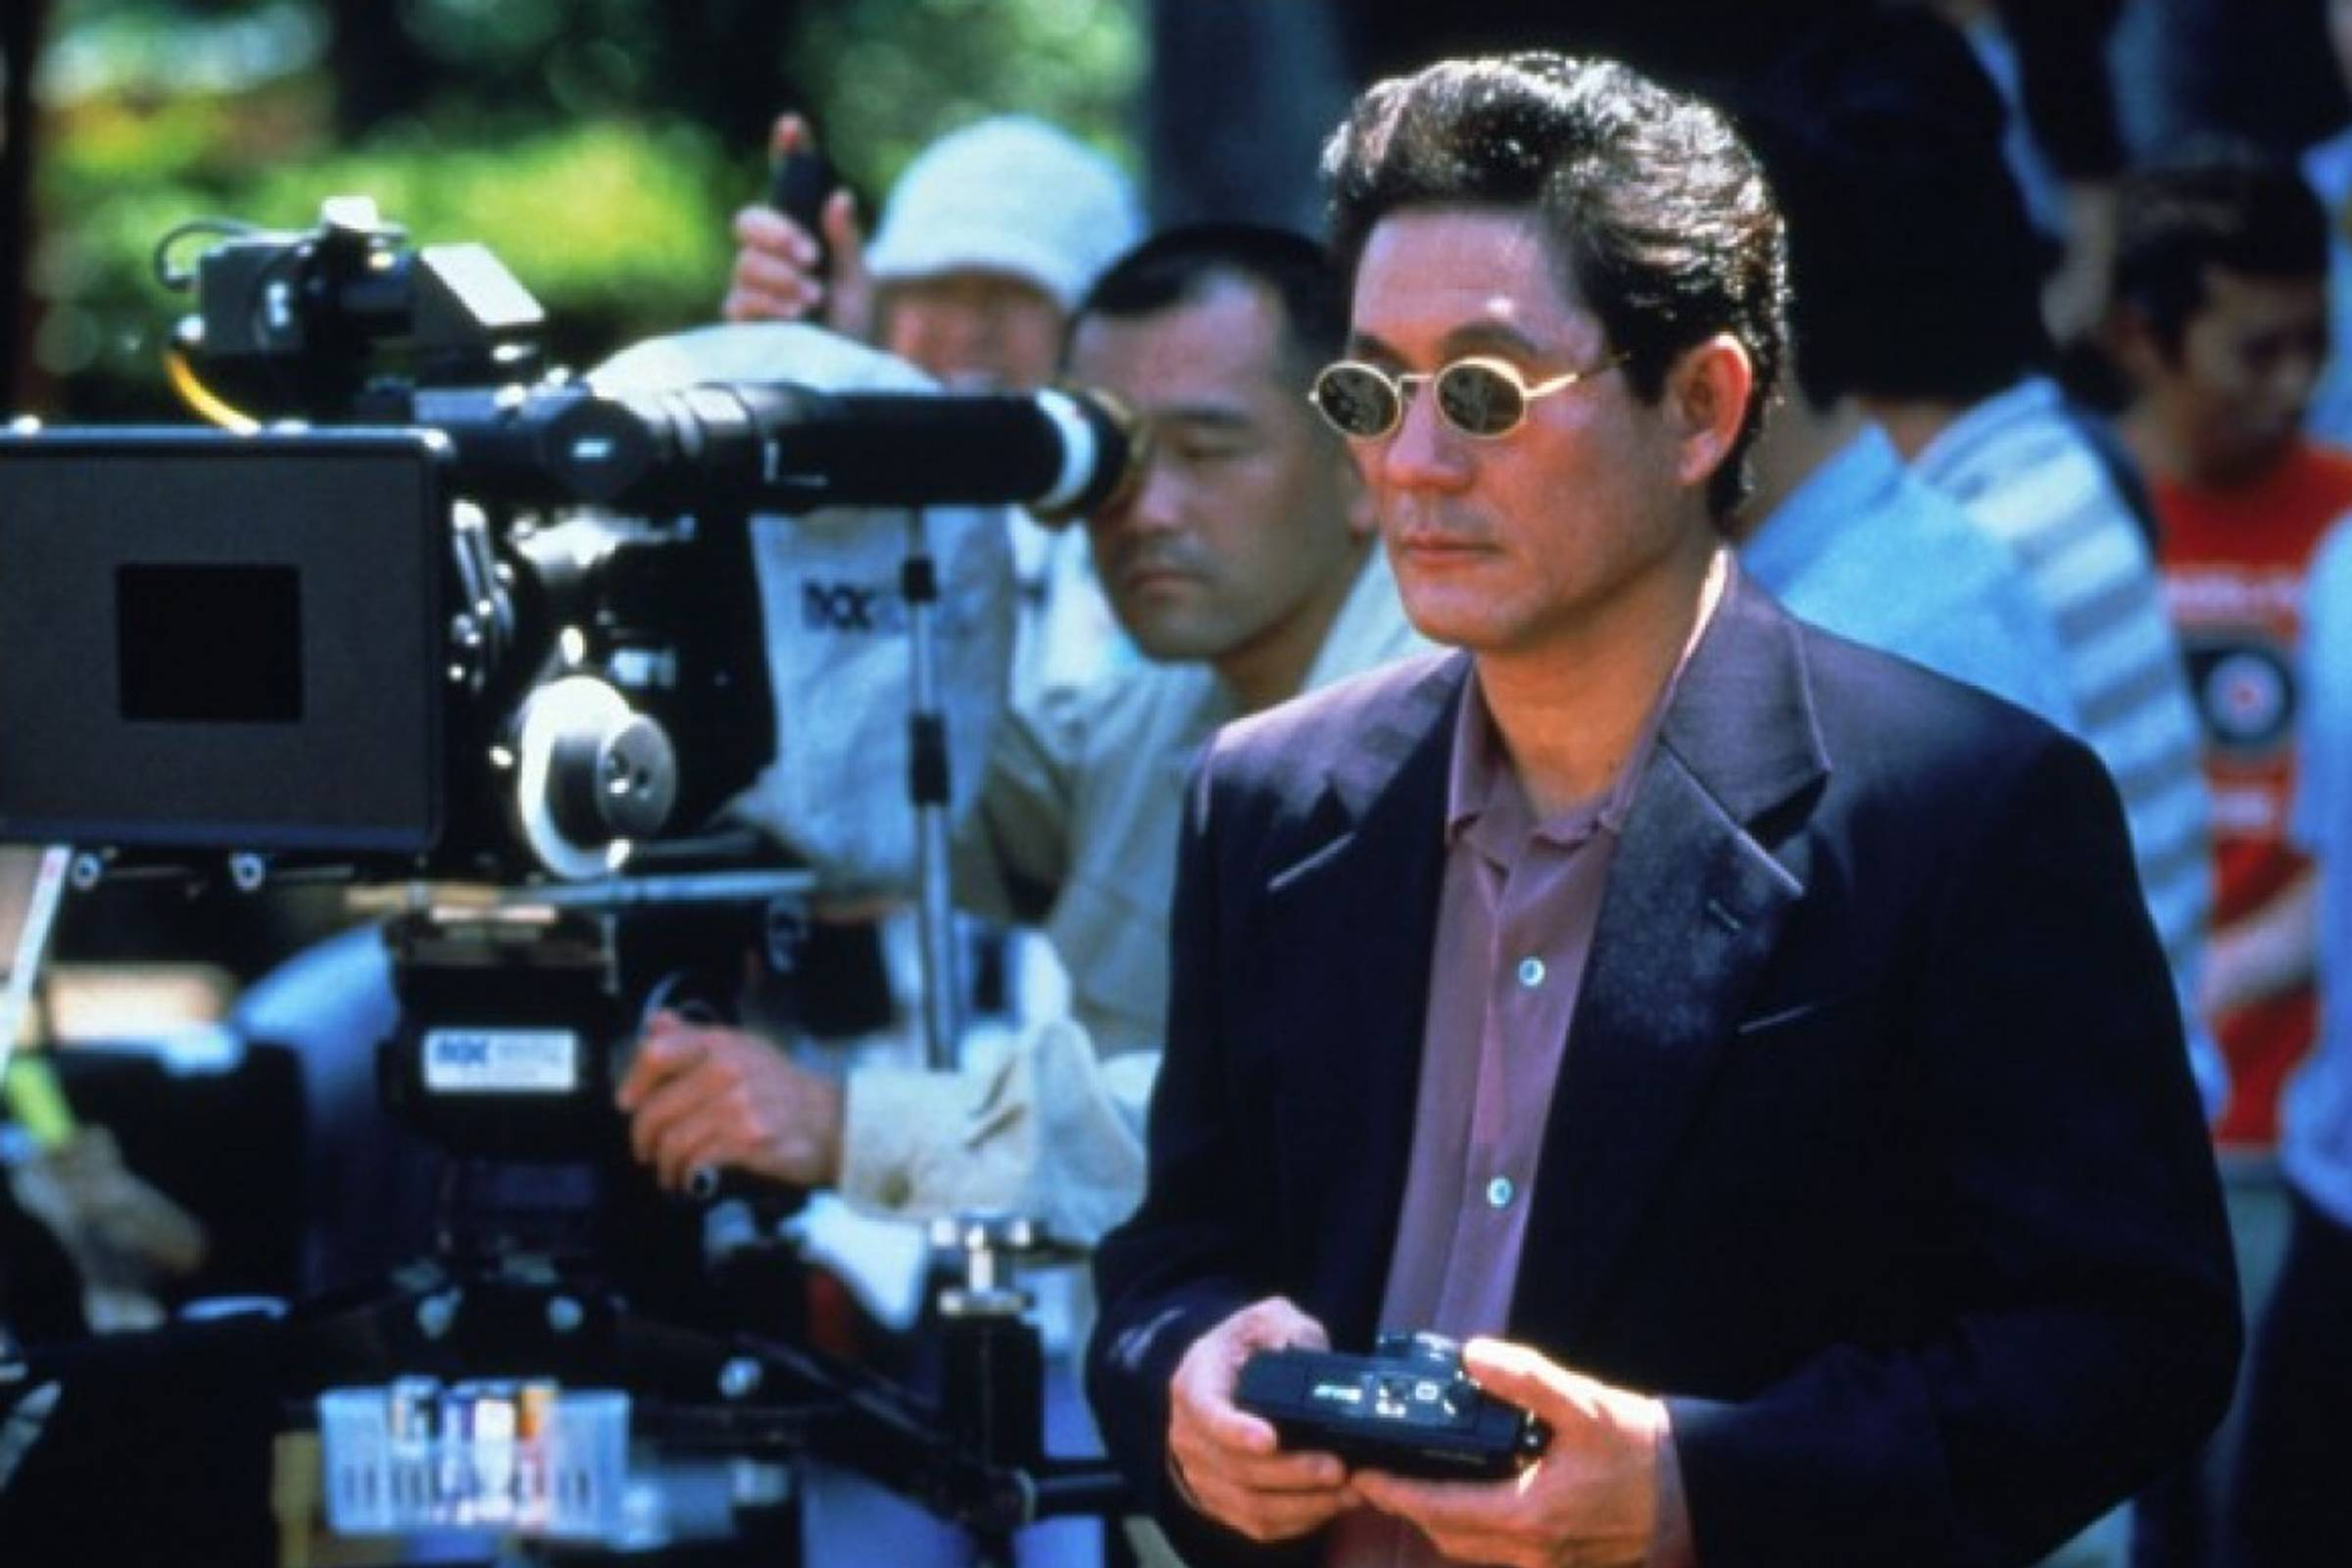 A Story in 3 Parts: A Study of Takeshi Kitano's Cinematic Style